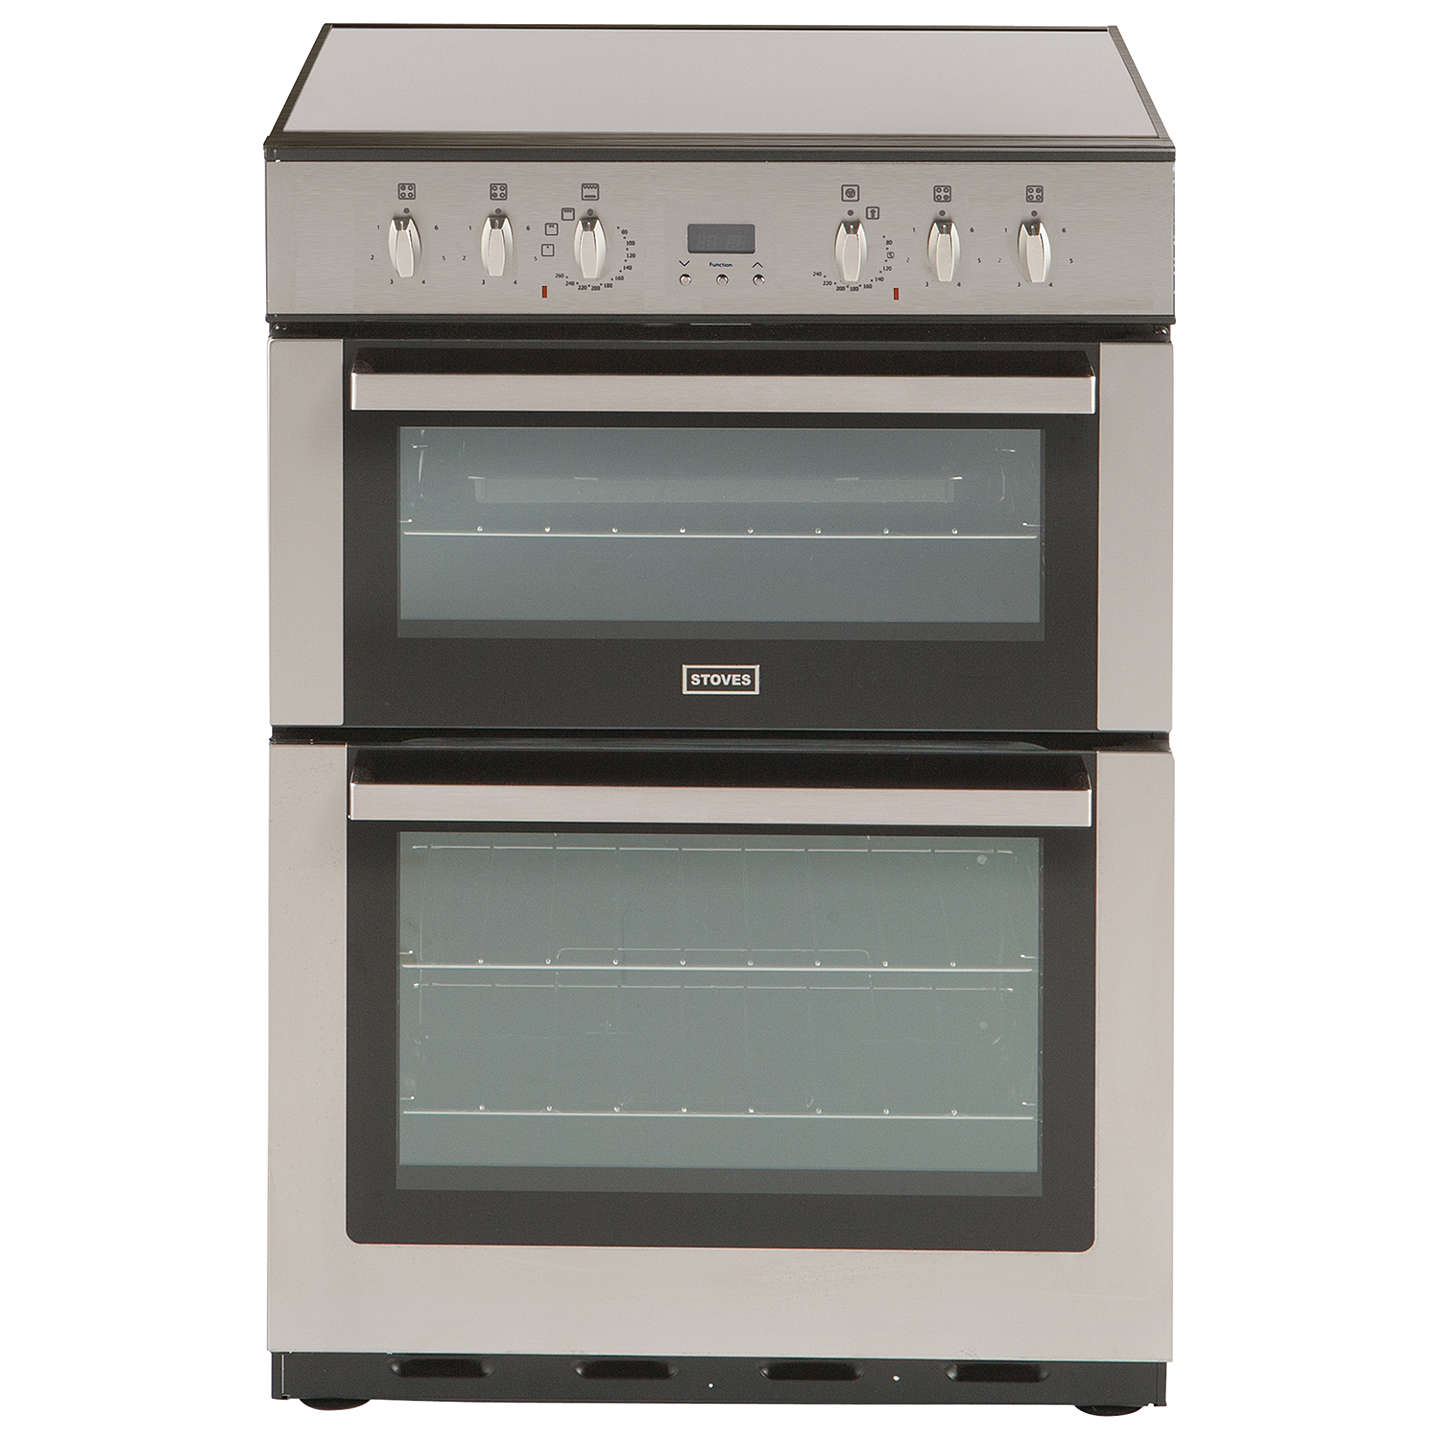 BuyStoves SEC60DOP Electric Cooker, Stainless Steel Online at johnlewis.com